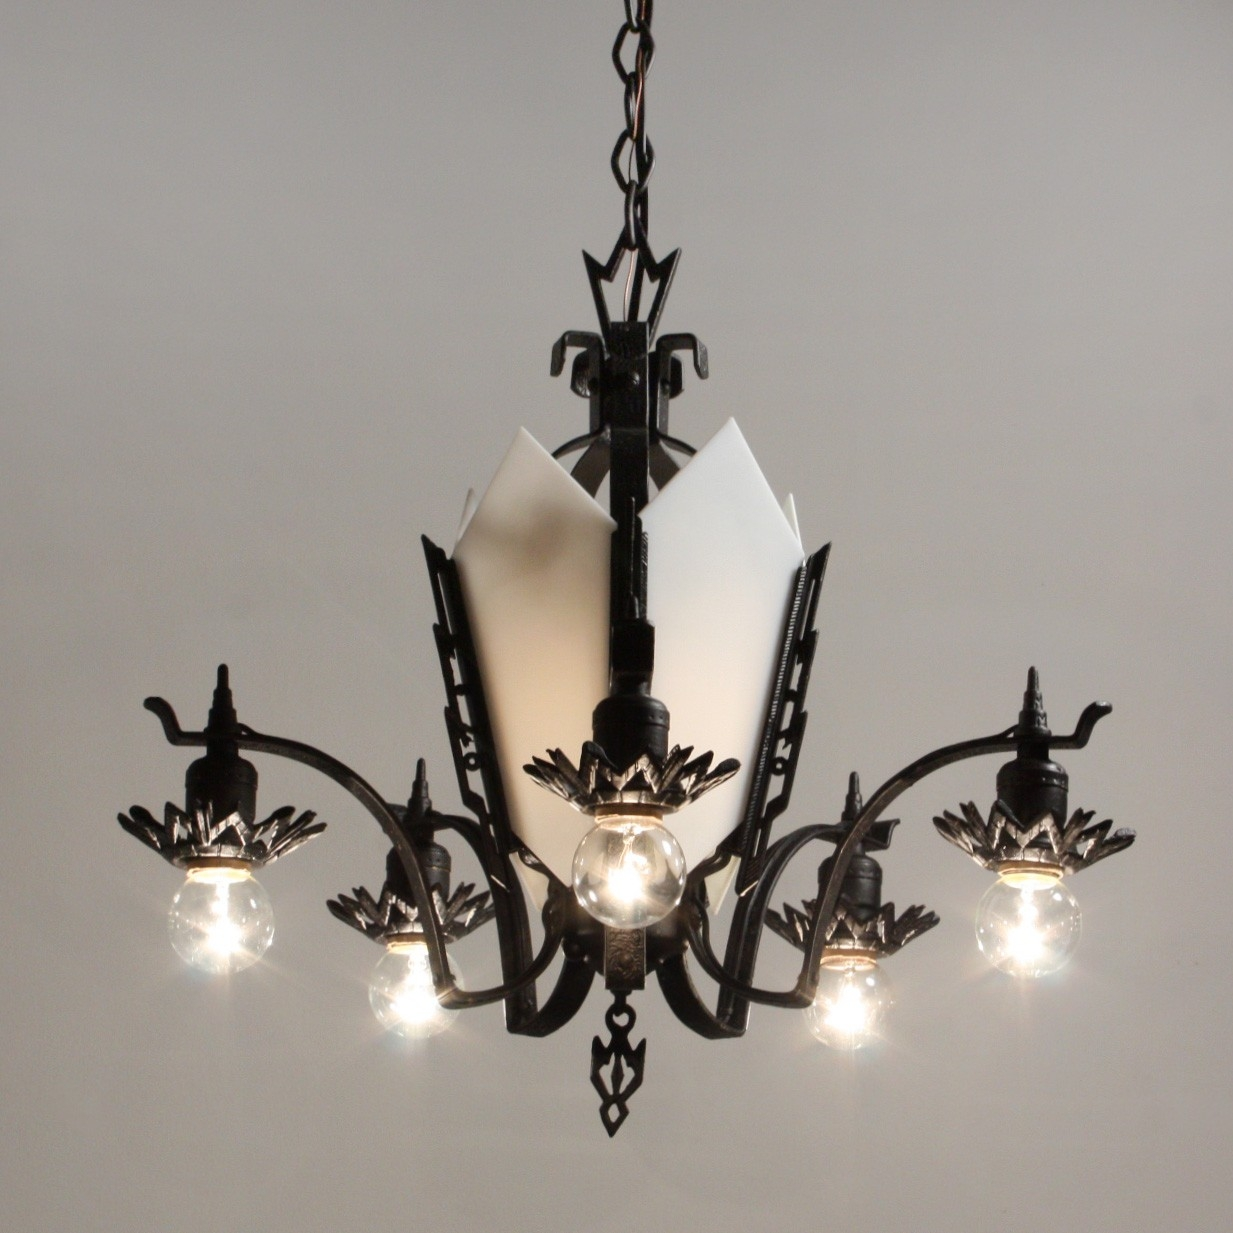 Antique Art Deco Cast Iron Chandelier C 1930s Preservation With Cast Iron Chandelier (Image 4 of 15)